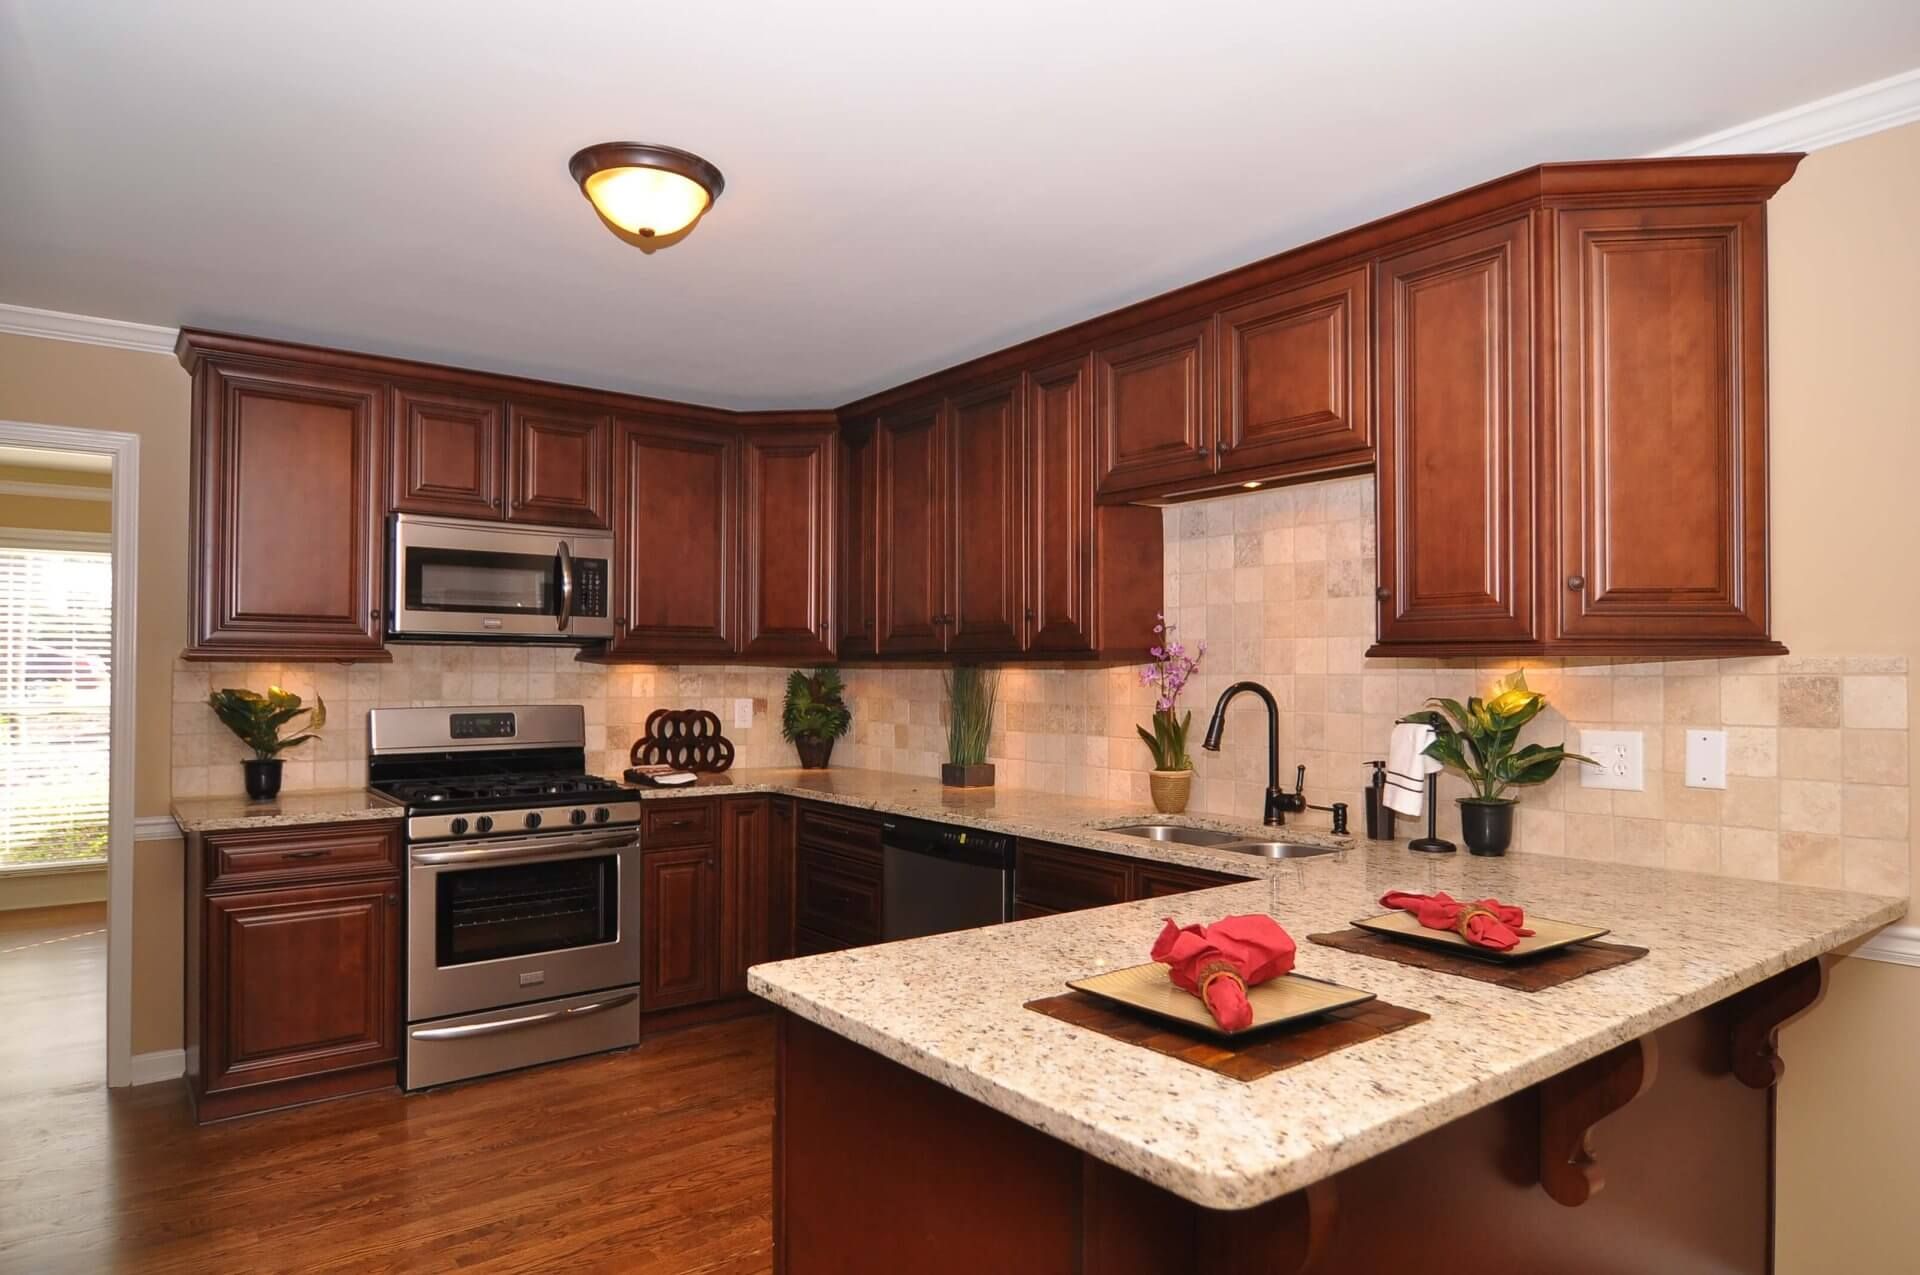 Brown Cocoa Glazed Raised Panel Kitchen Cabinets Cocoa Glazed Raised Panel Rta Cabinets